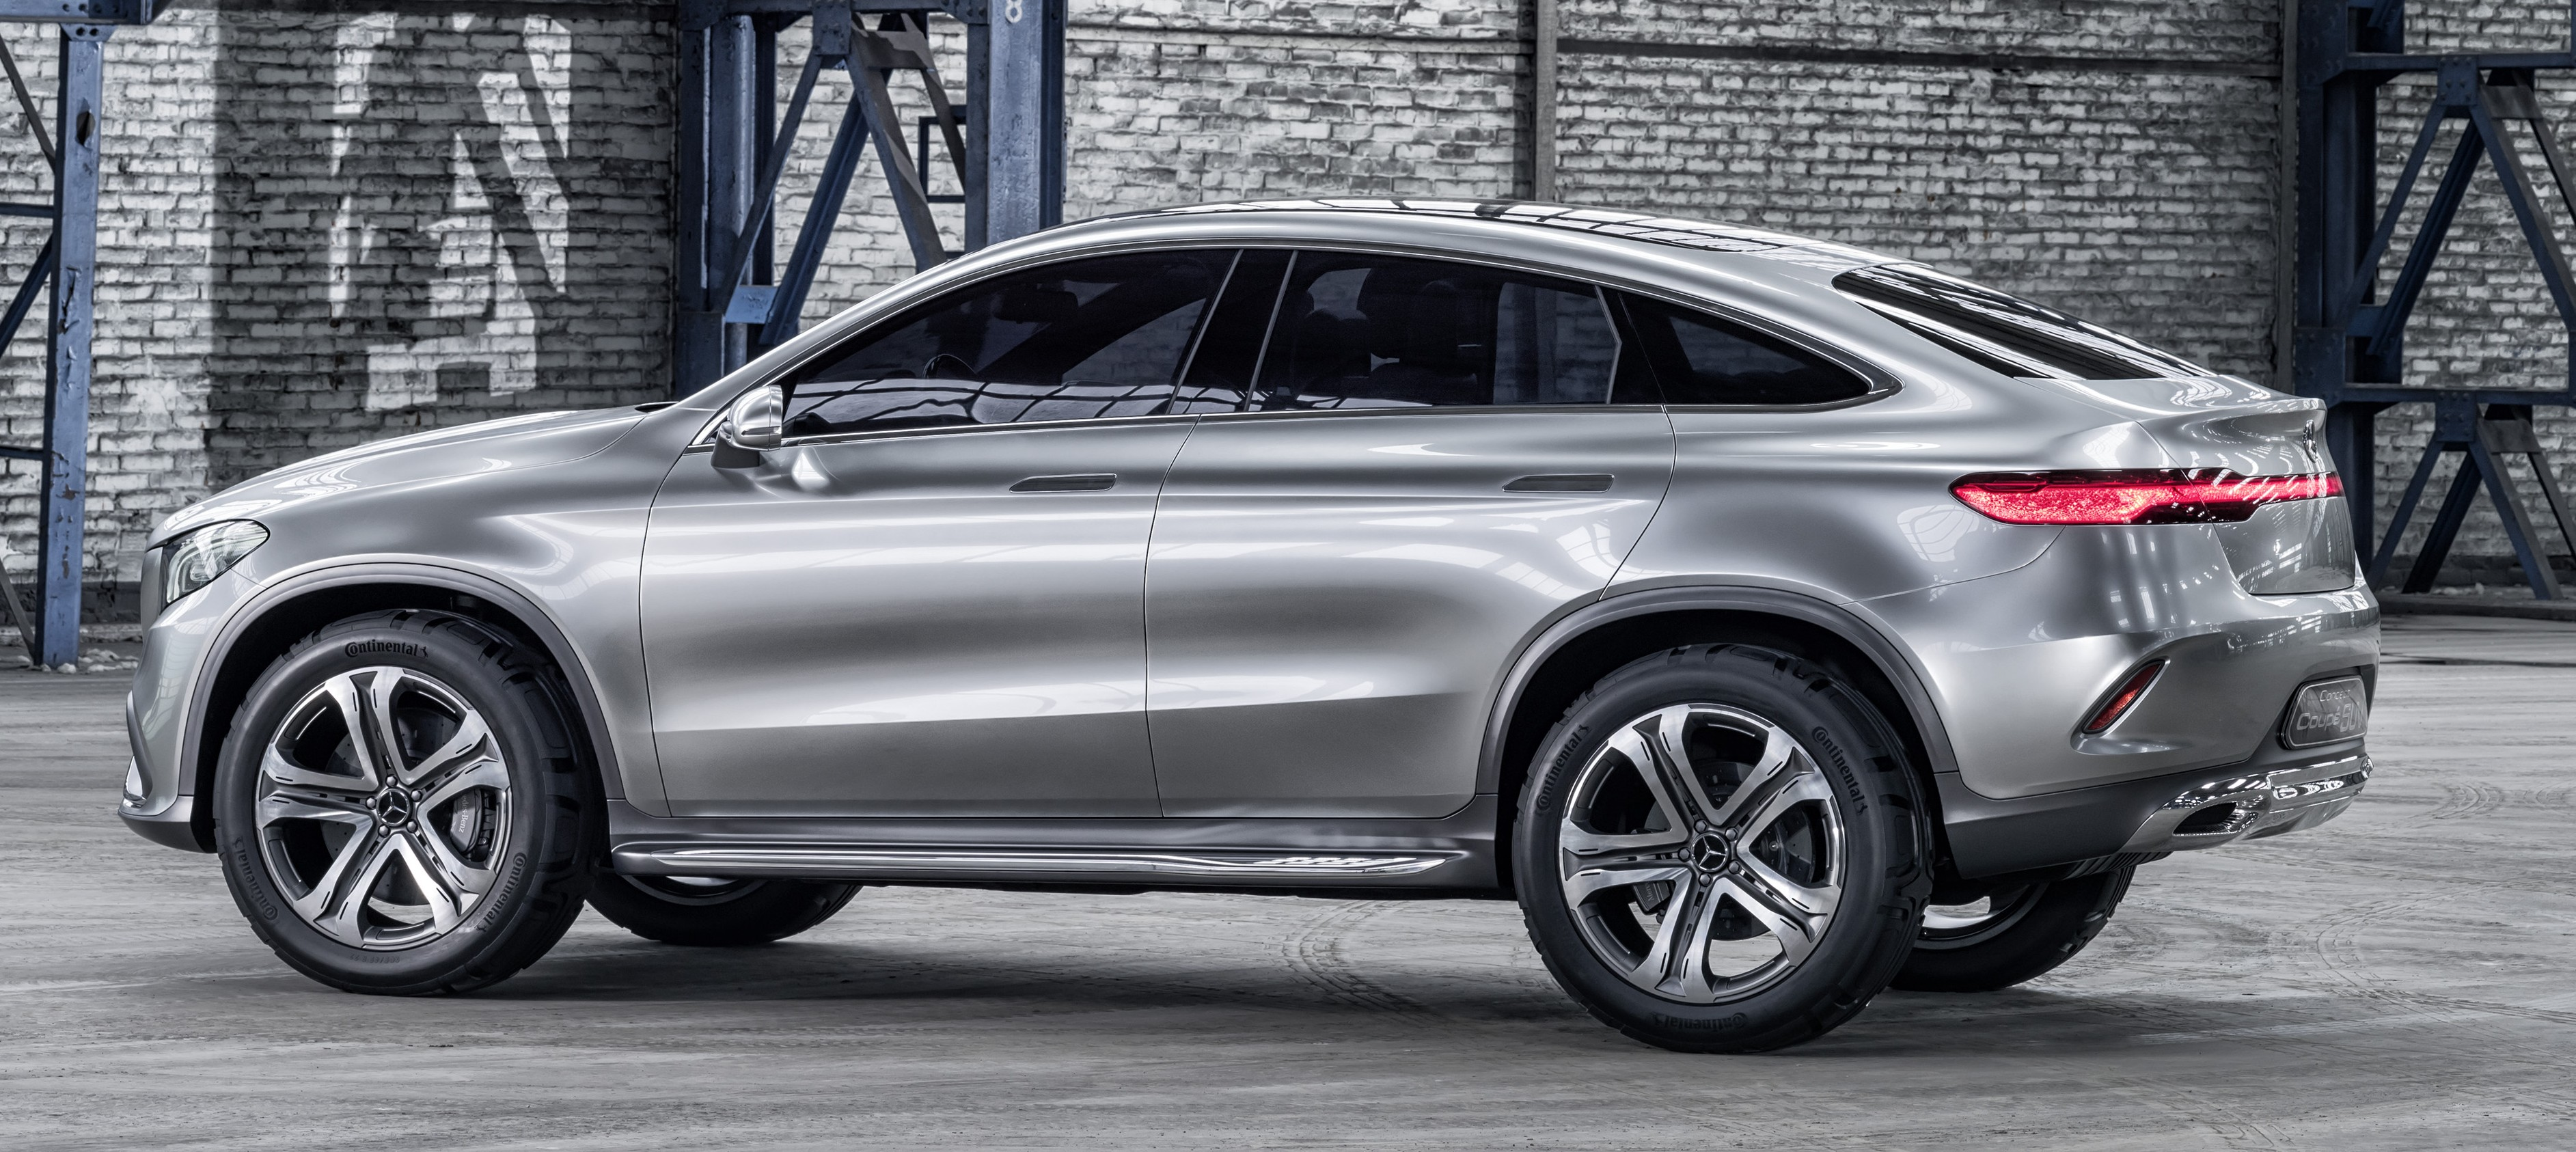 Mercedes benz coupe suv concept previews x6 rival paul tan for Mercedes benz suv coupe